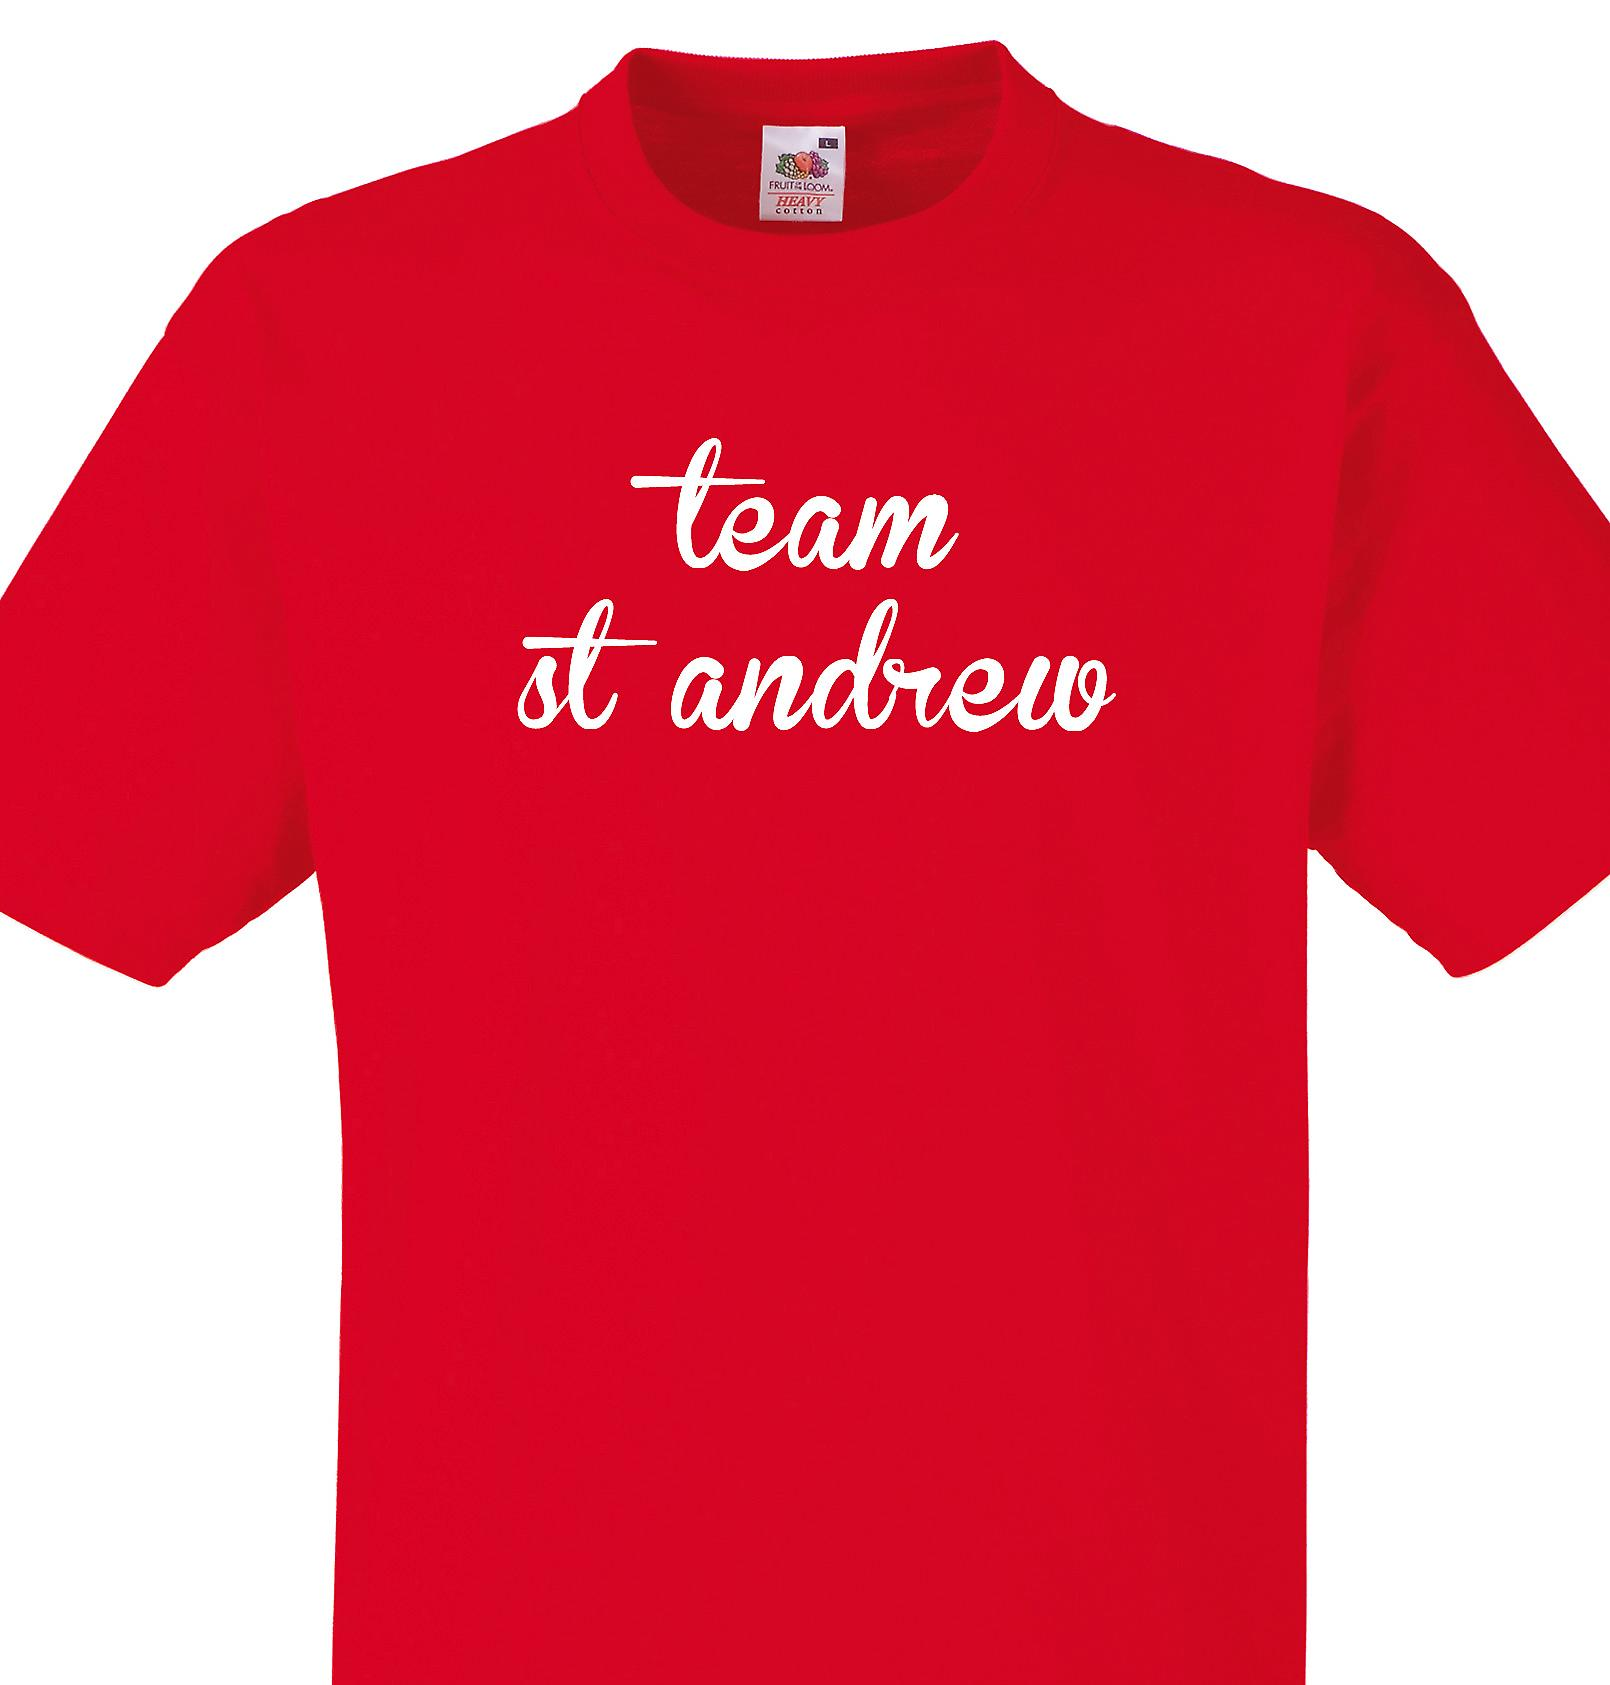 Team St andrew Red T shirt